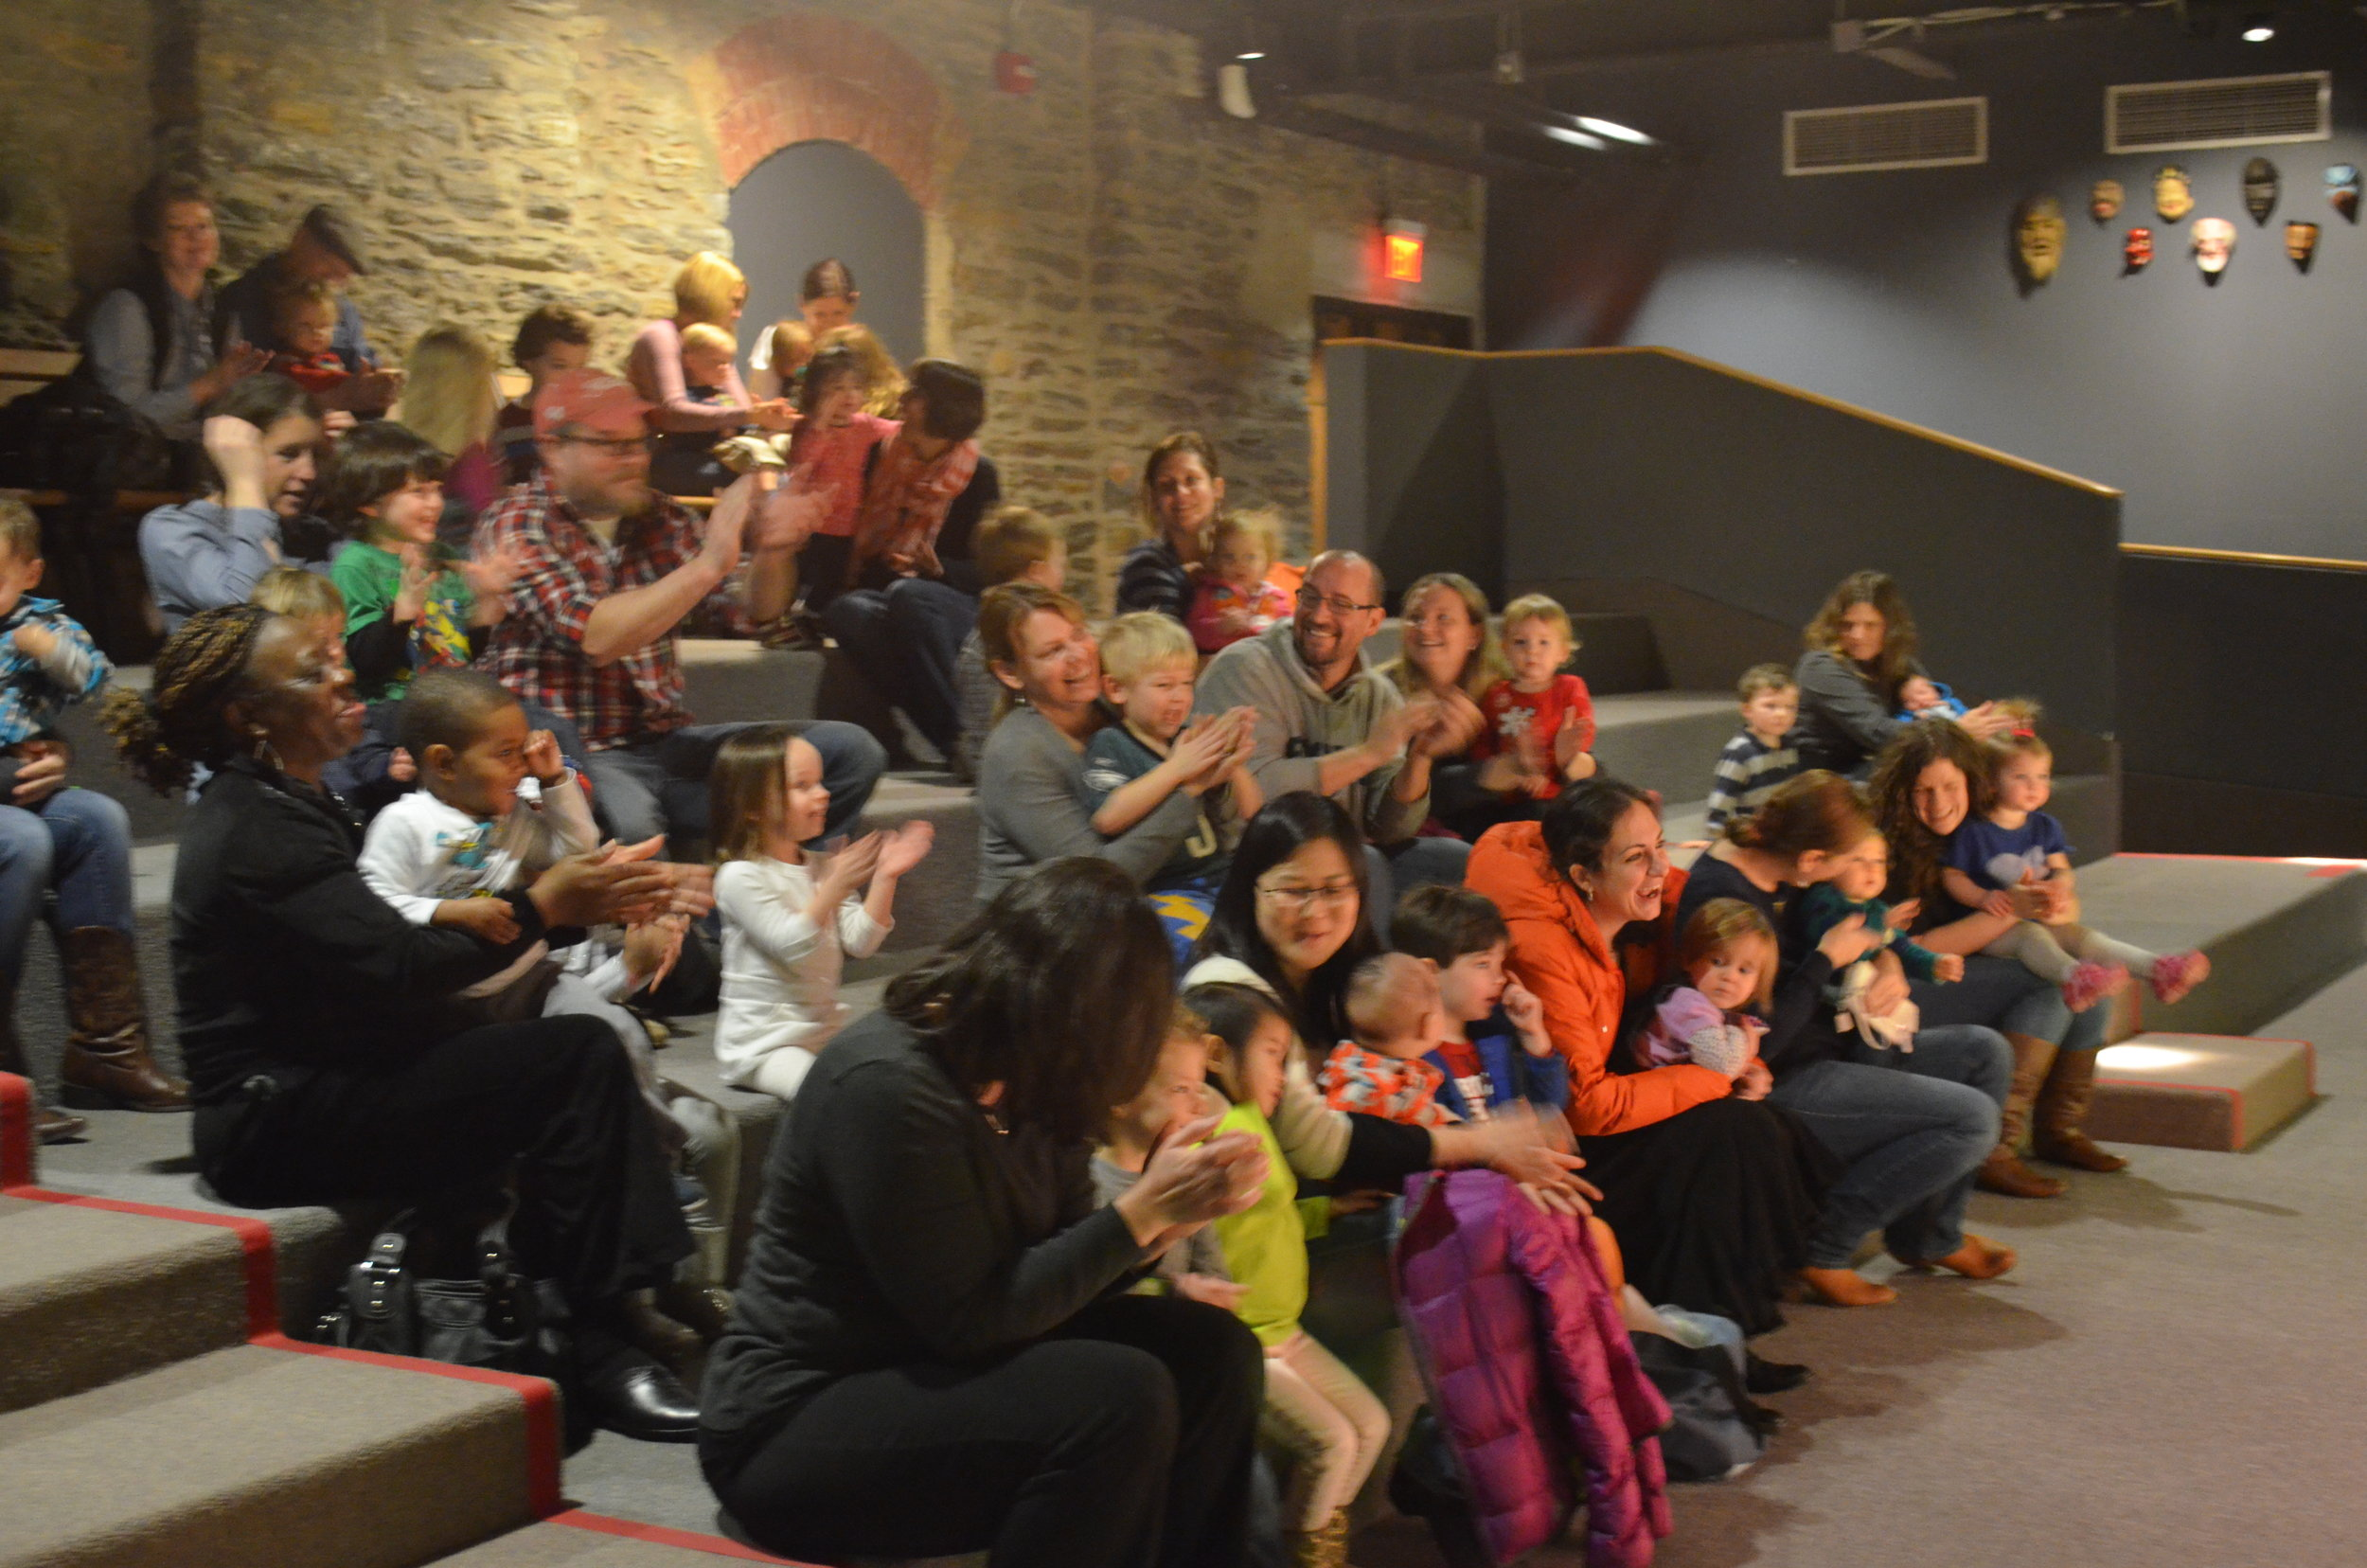 David's shows are engaging for kids ages 2-6. (And also a lot of fun for big people, too.)